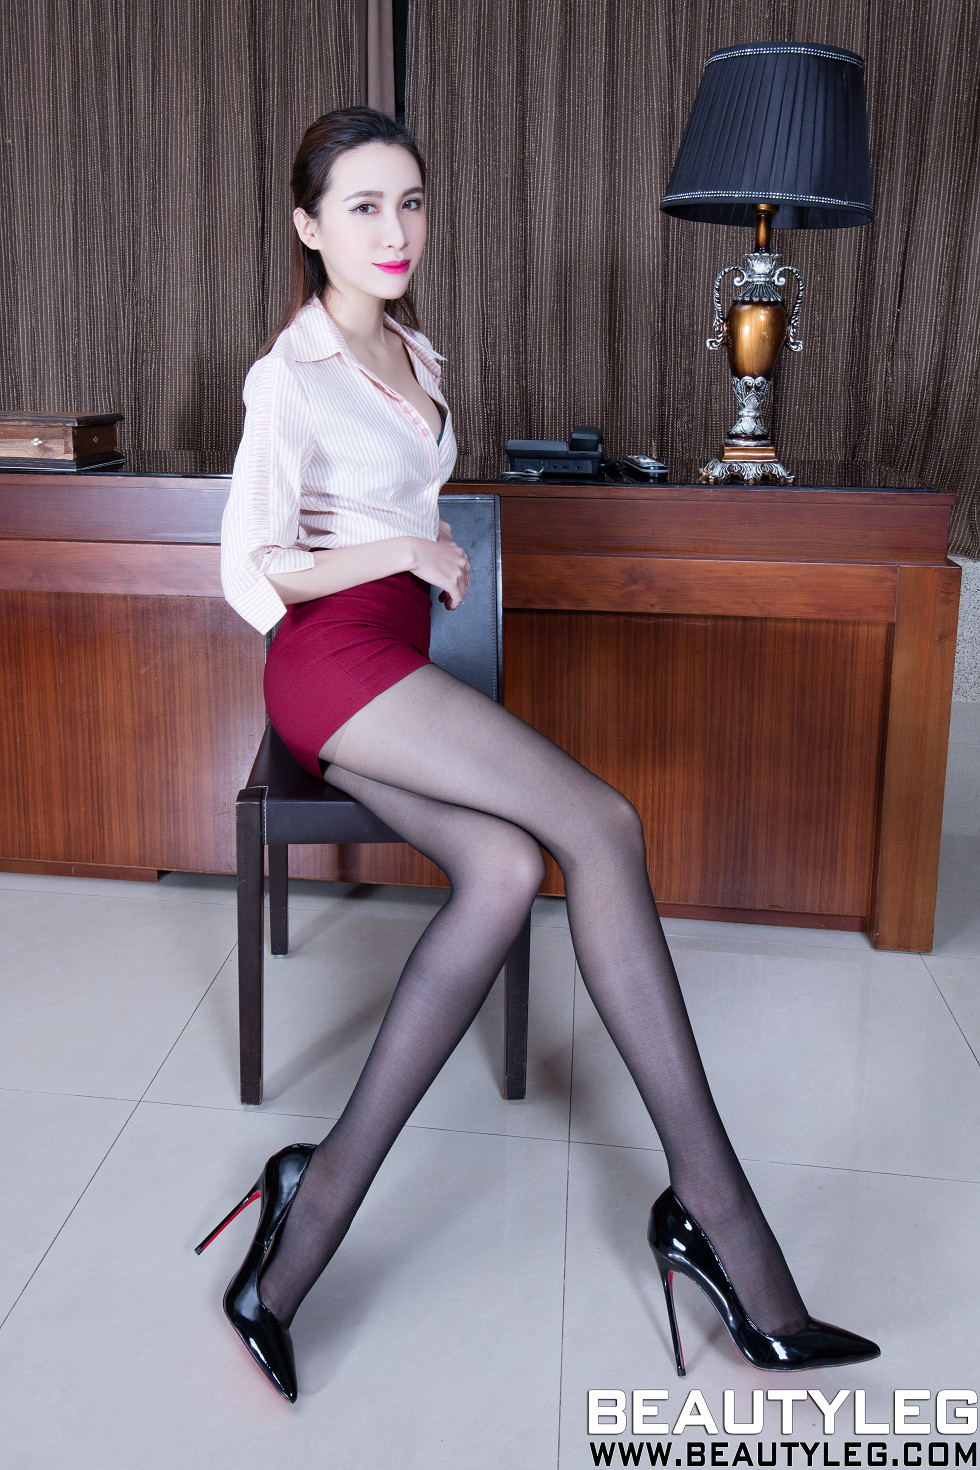 Beautyleg-No.1469_模特Stephy妹子白色连体泳装配白丝裤袜秀完美身材性感写真41P[41P][图集]